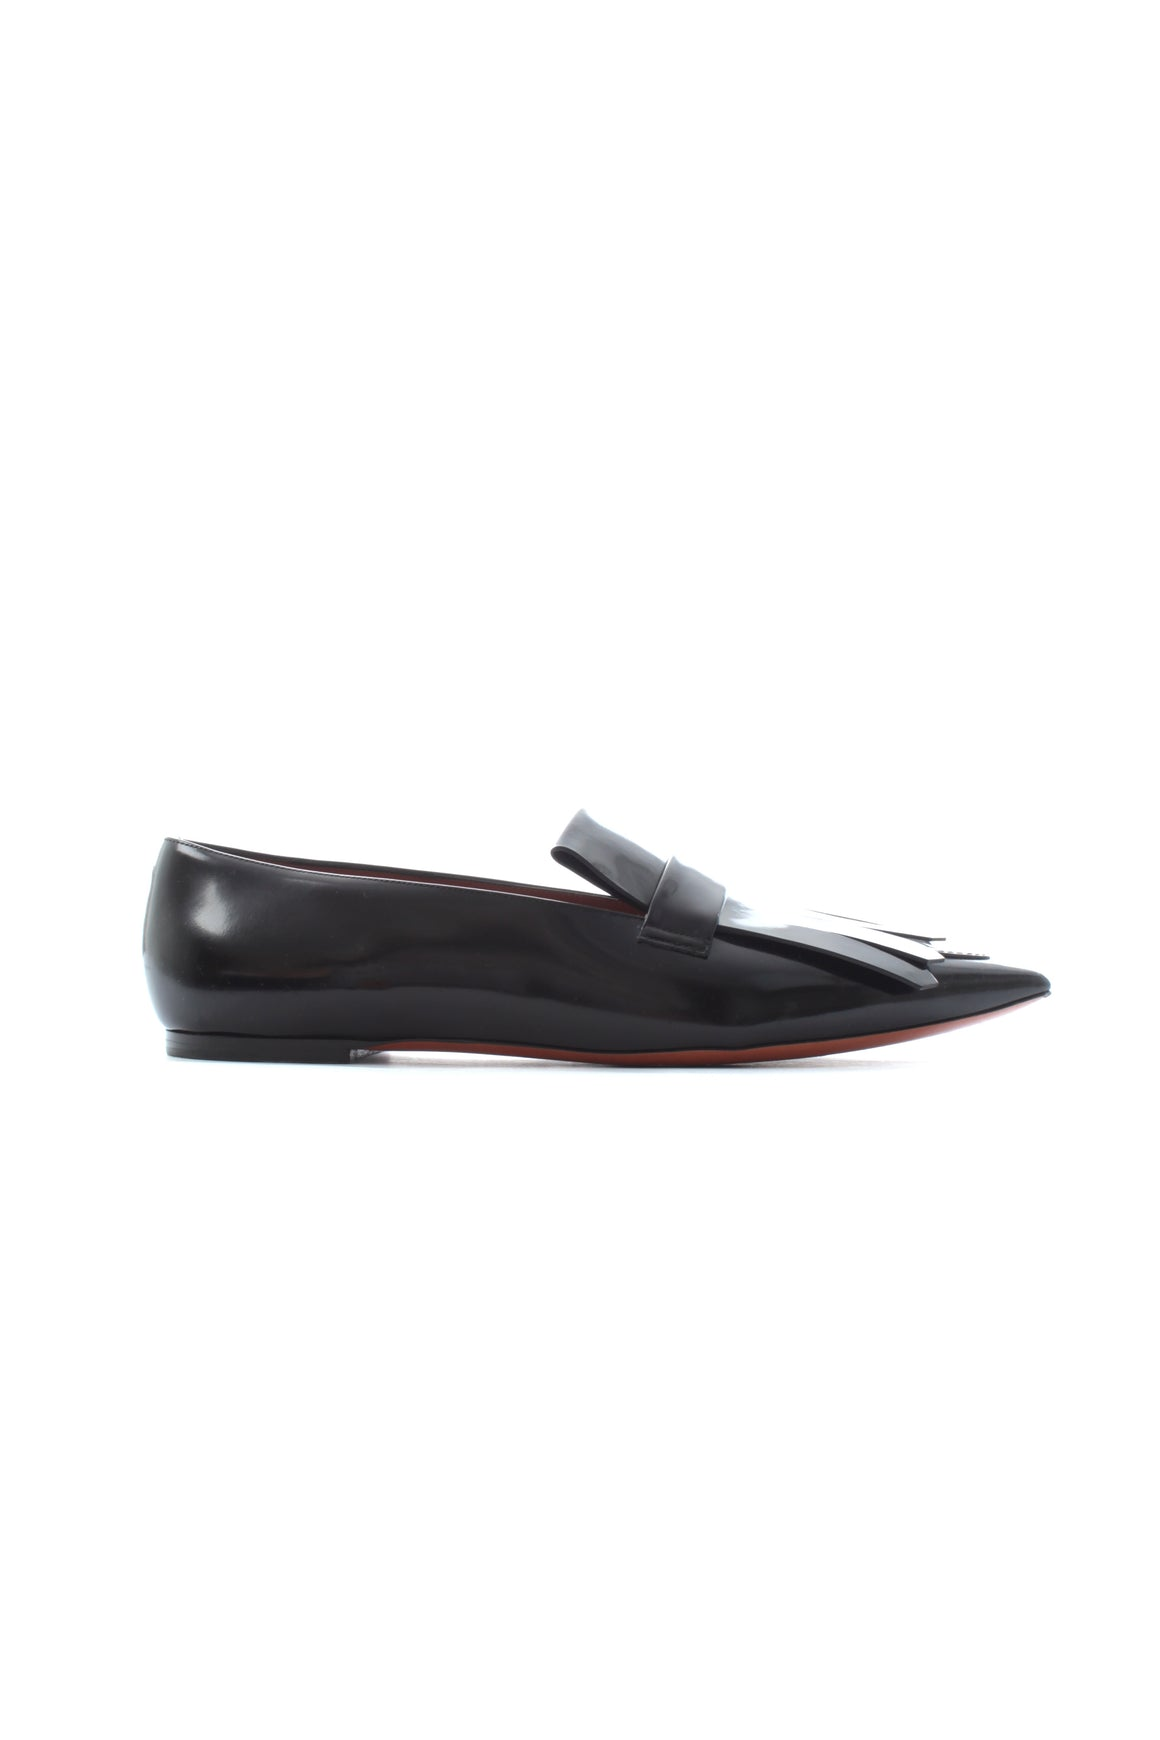 Celine 'Masculin' Fringe Pointed Leather Loafers